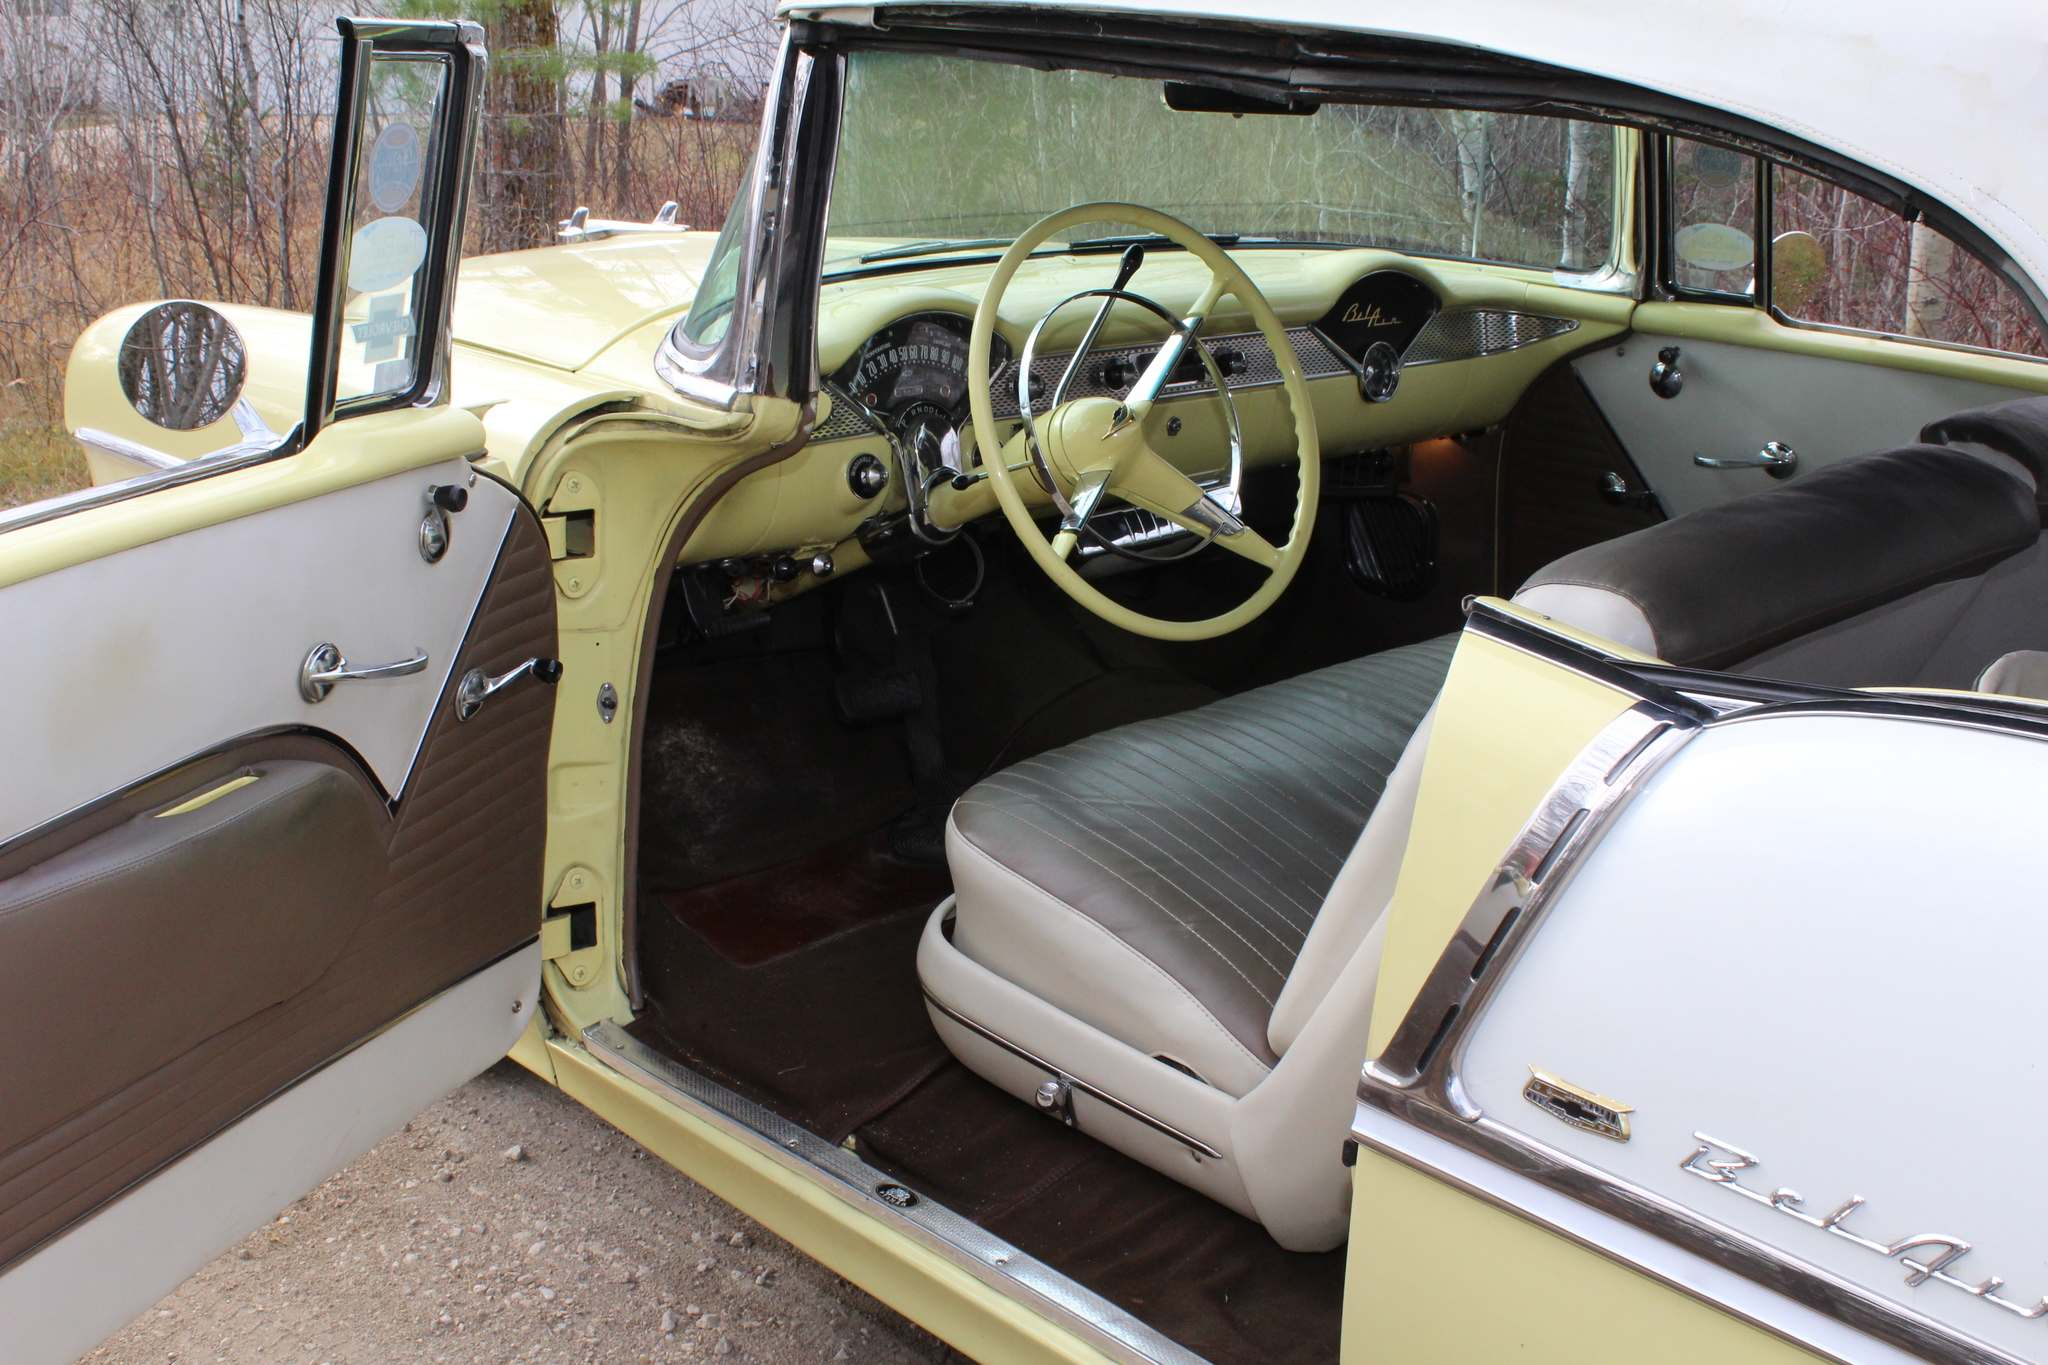 Larry D'Argis / Winnipeg Free PressThe interior of the 1955 Bel Air convertible was finished with a beige and ivory simulated-leather upholstery kit and white convertible top.